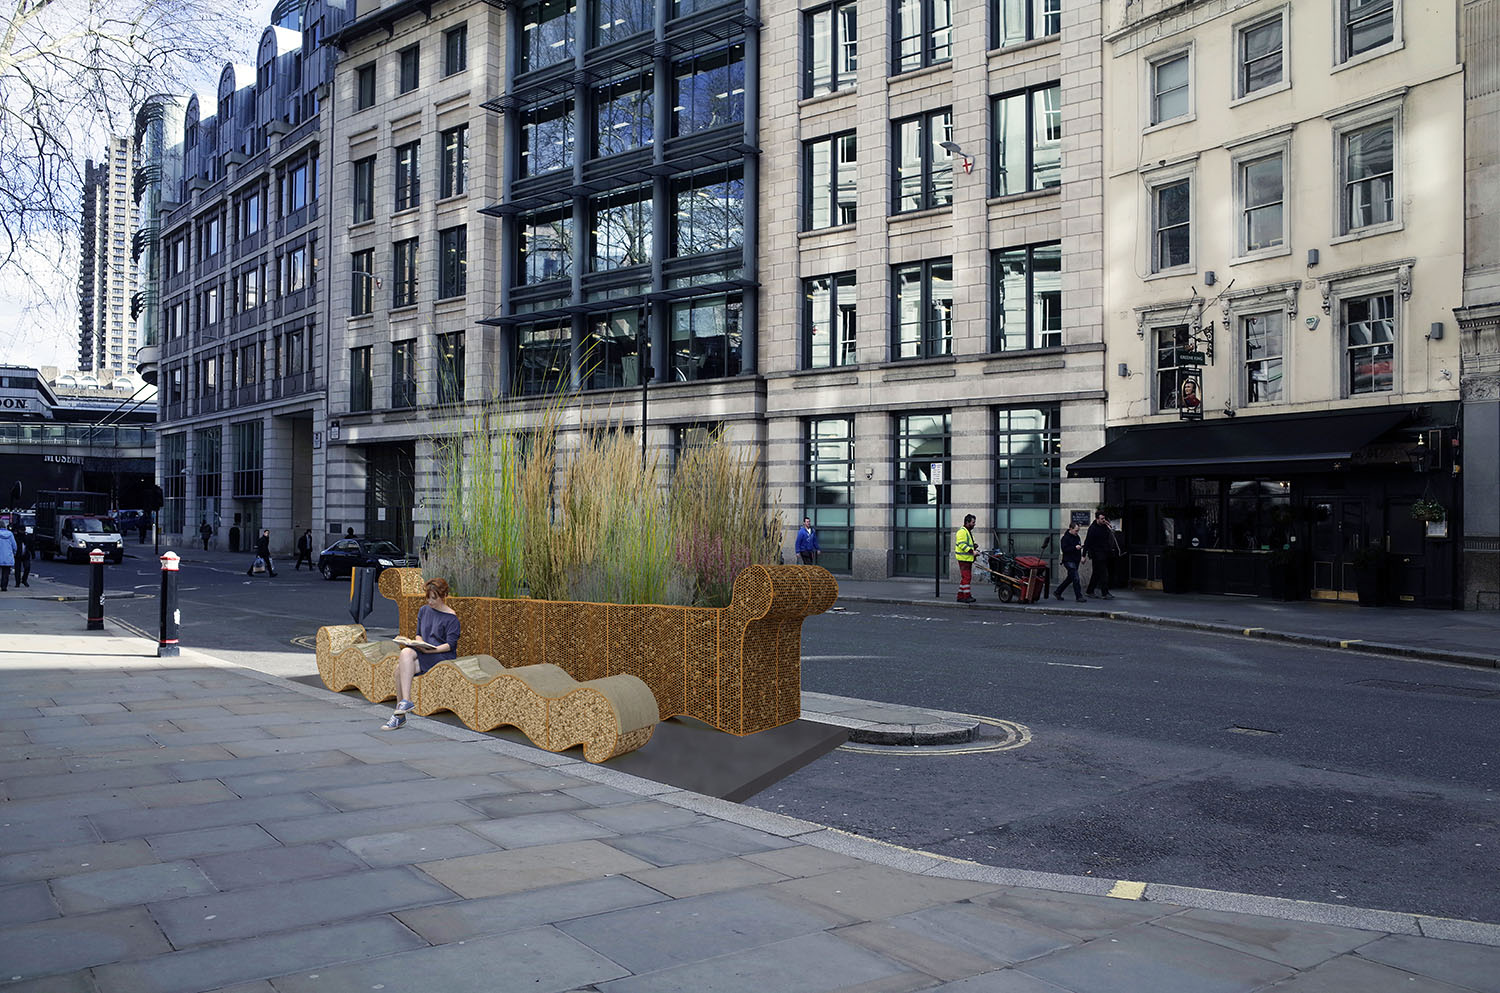 The bench and planter are both made from gabions modules   This construction and the long grasses reference a time when London was predominantly marshland, a situation far from today's harmful pollution levels. The large grasses form a wall screening the users of the bench from the hustle and bustle of the road.